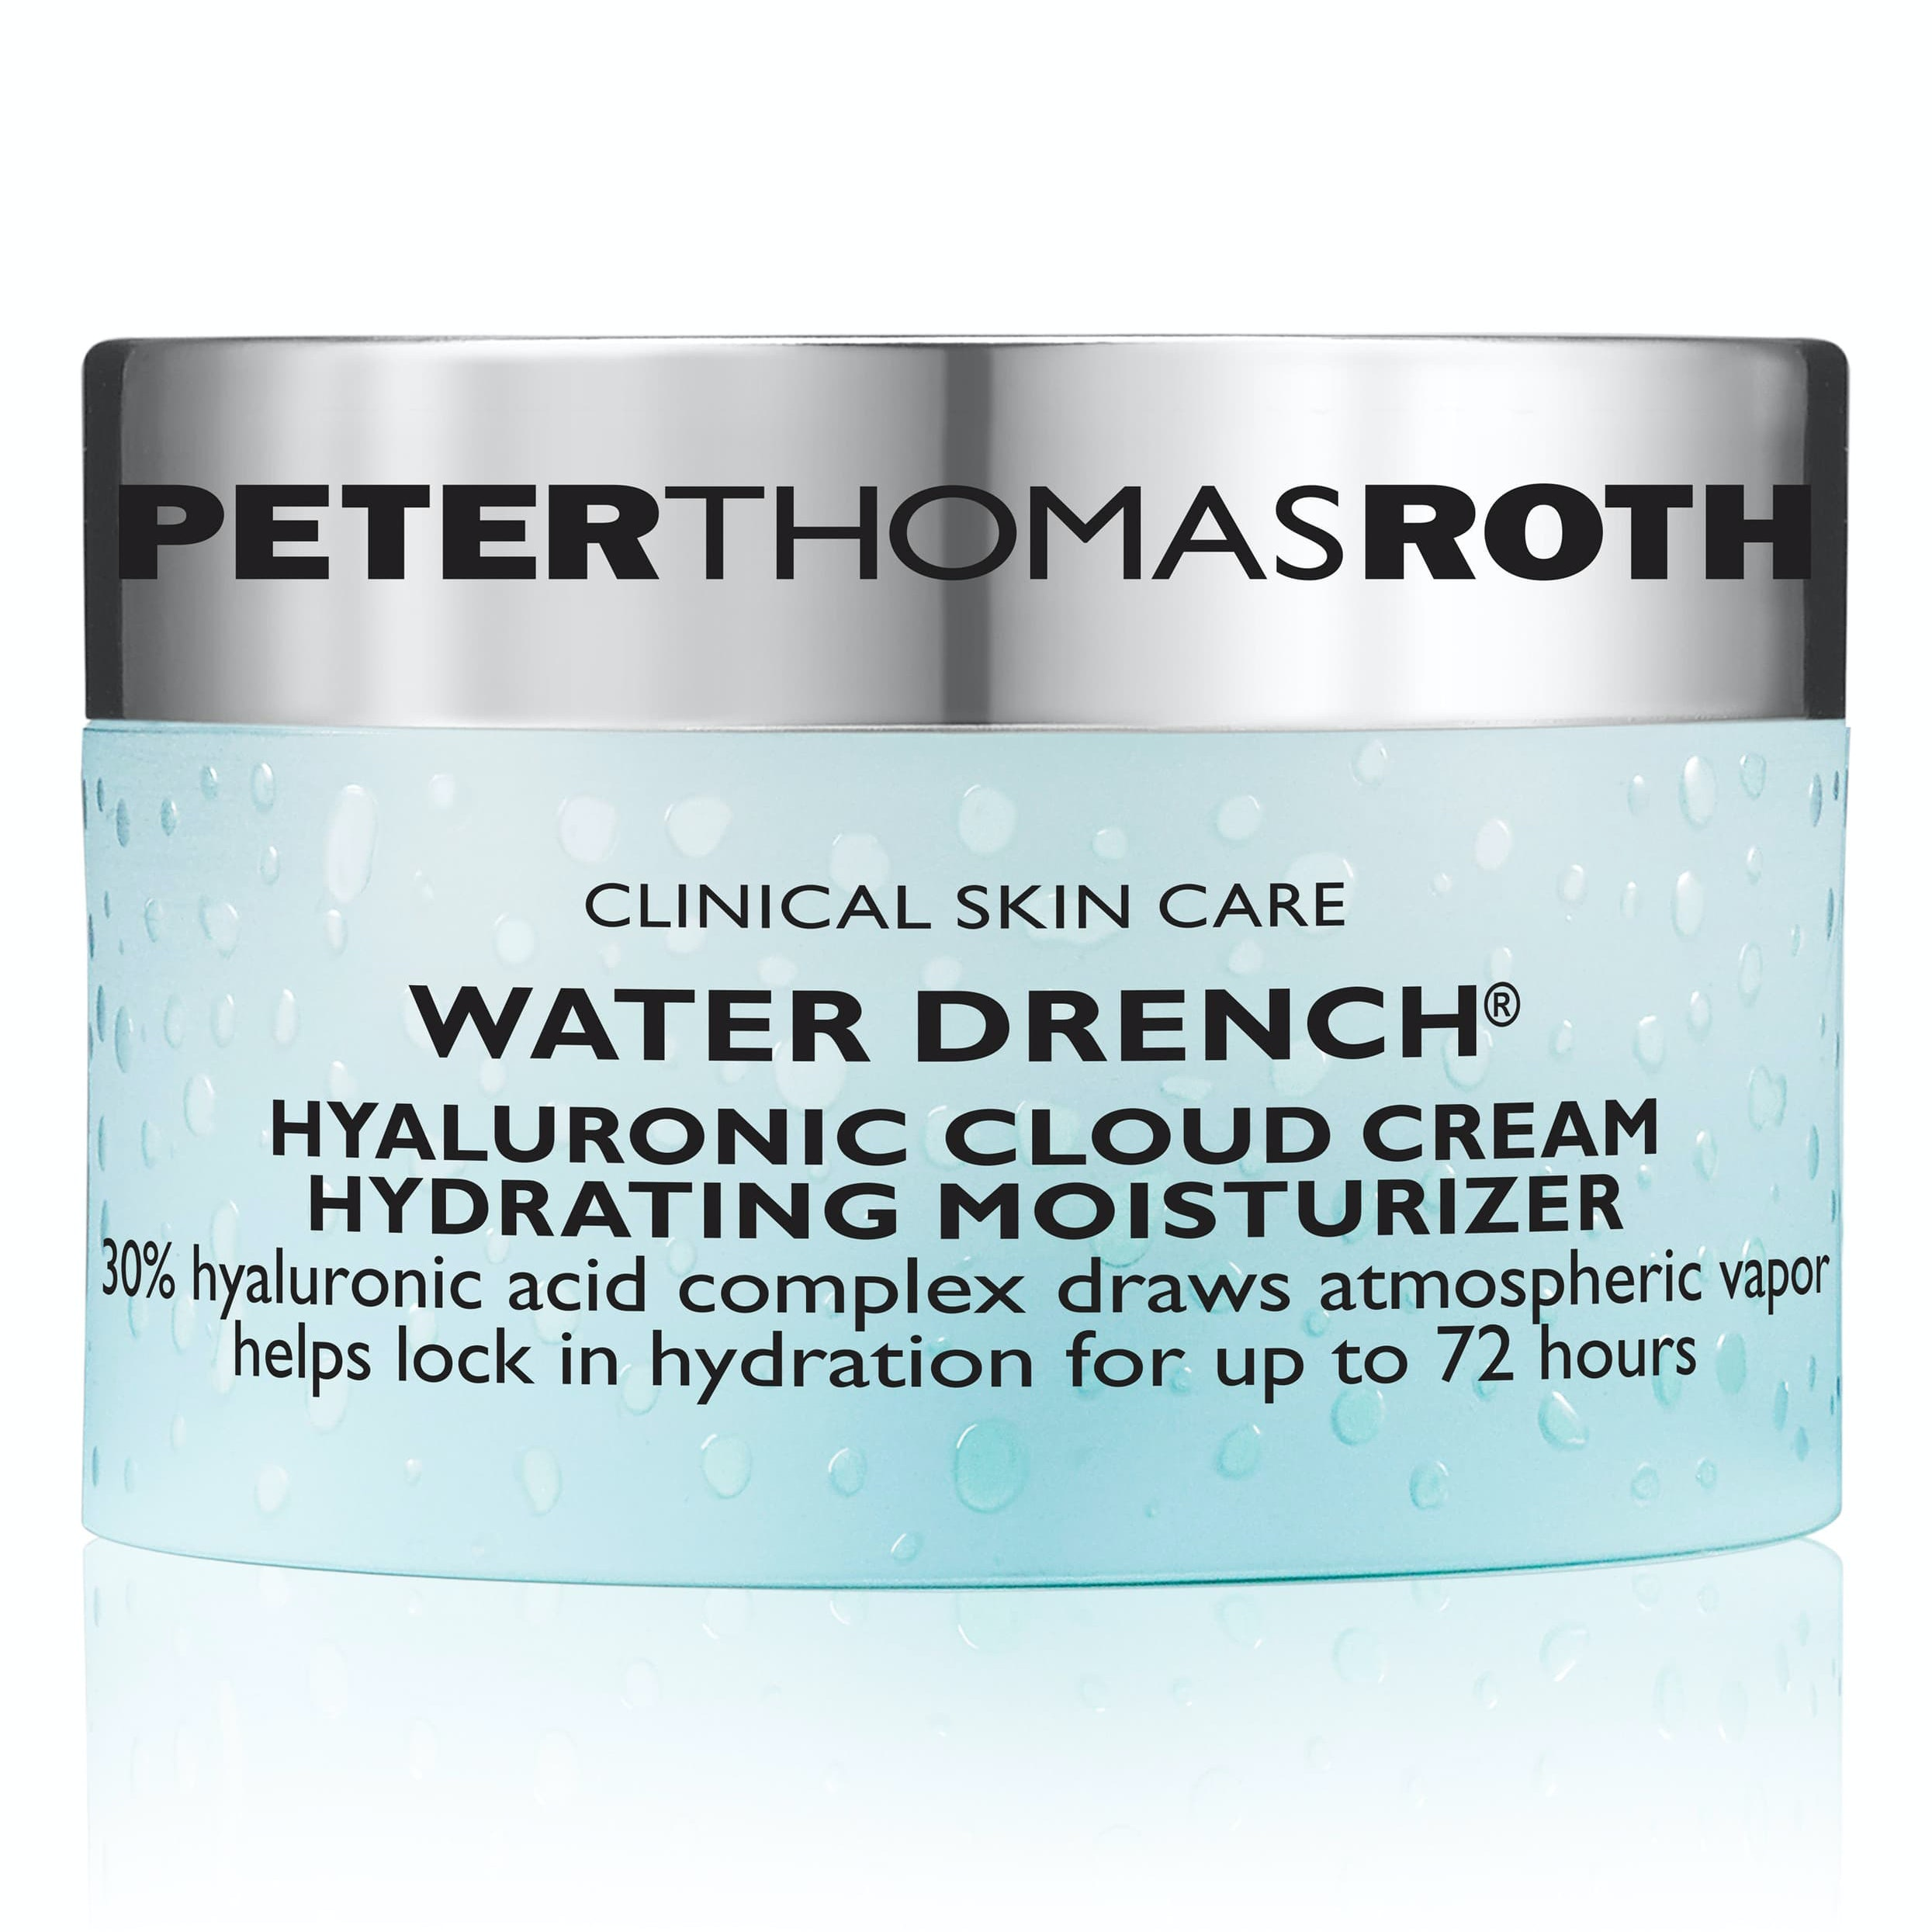 PeterThomasRoth® Water Drench® Hyaluronic Cloud Cream